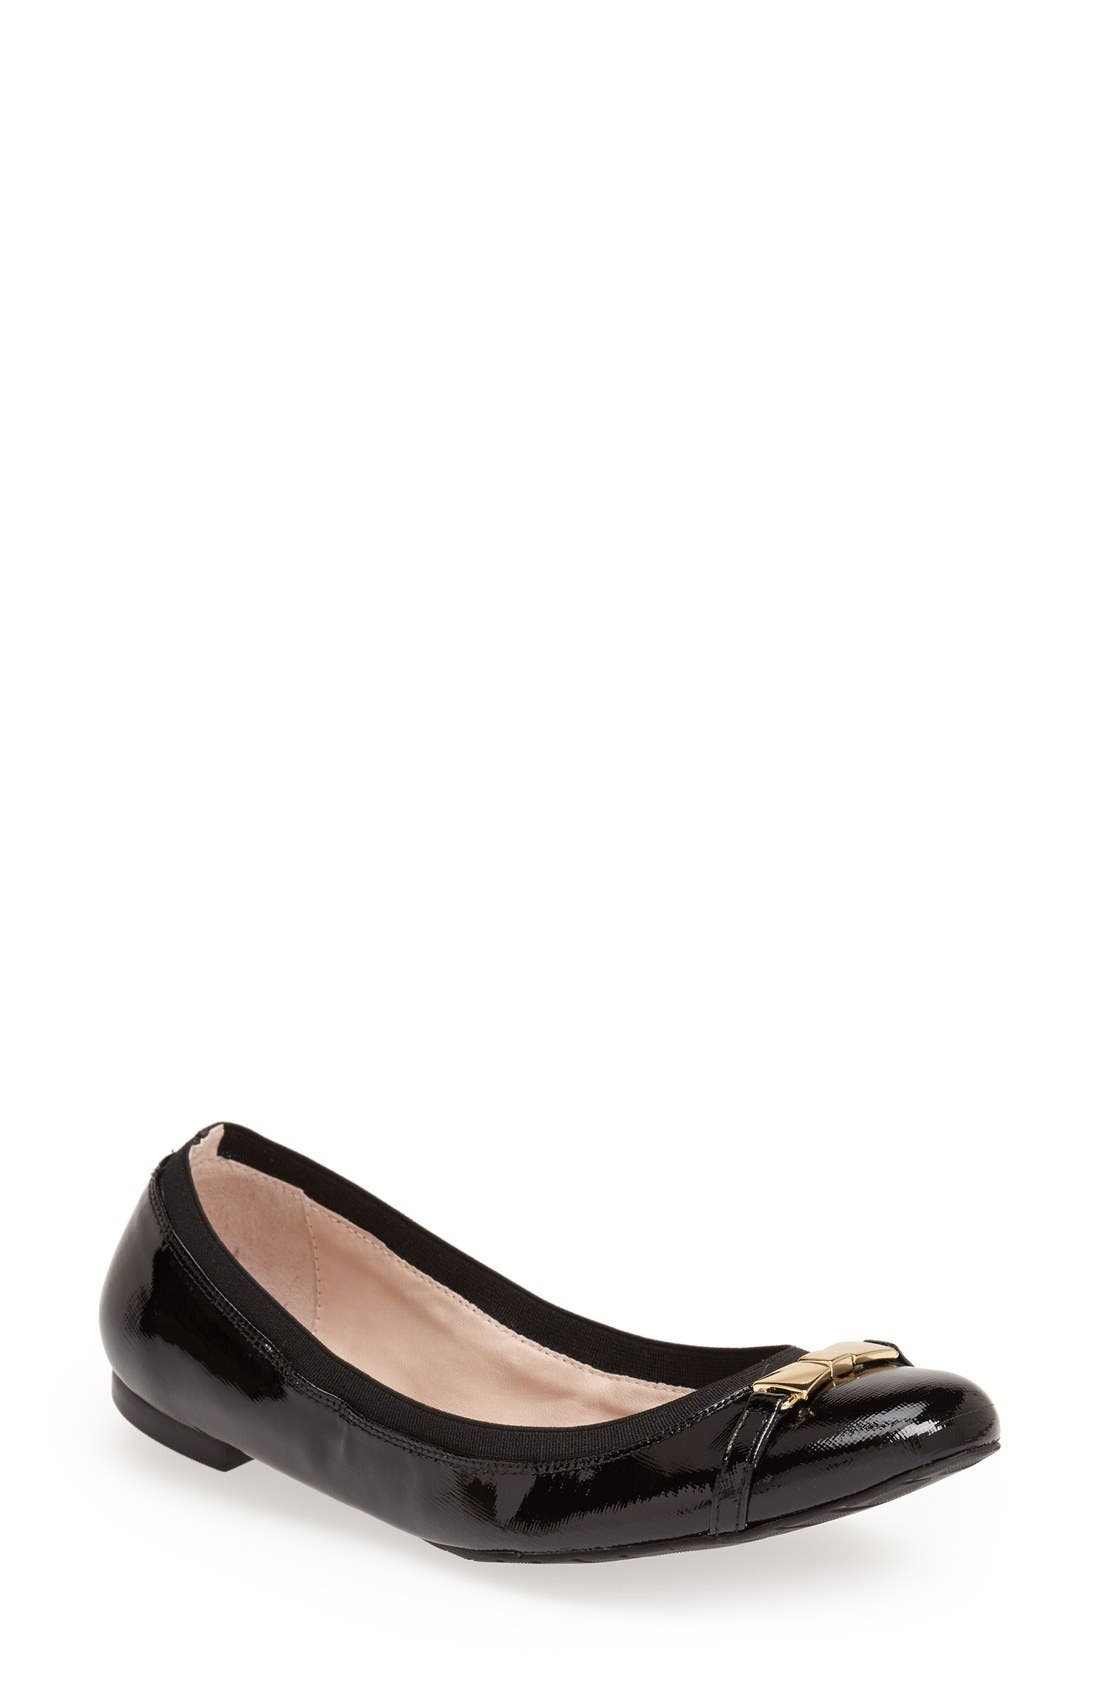 Alternate Image 1 Selected - kate spade new york 'blaine' patent leather skimmer flat (Women)